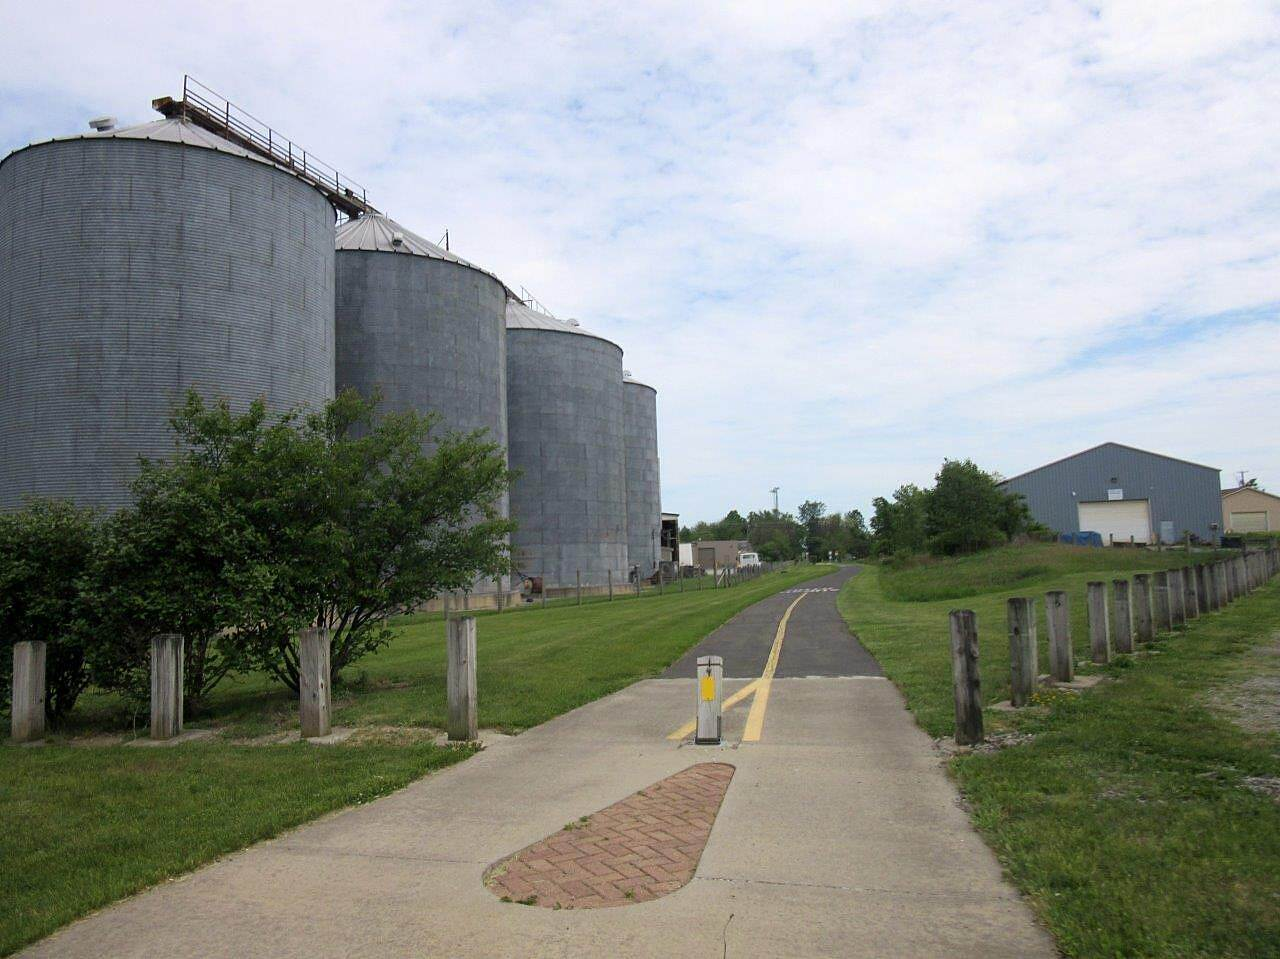 MetroParks Bikeway Silos Silos along the trail - May 2015